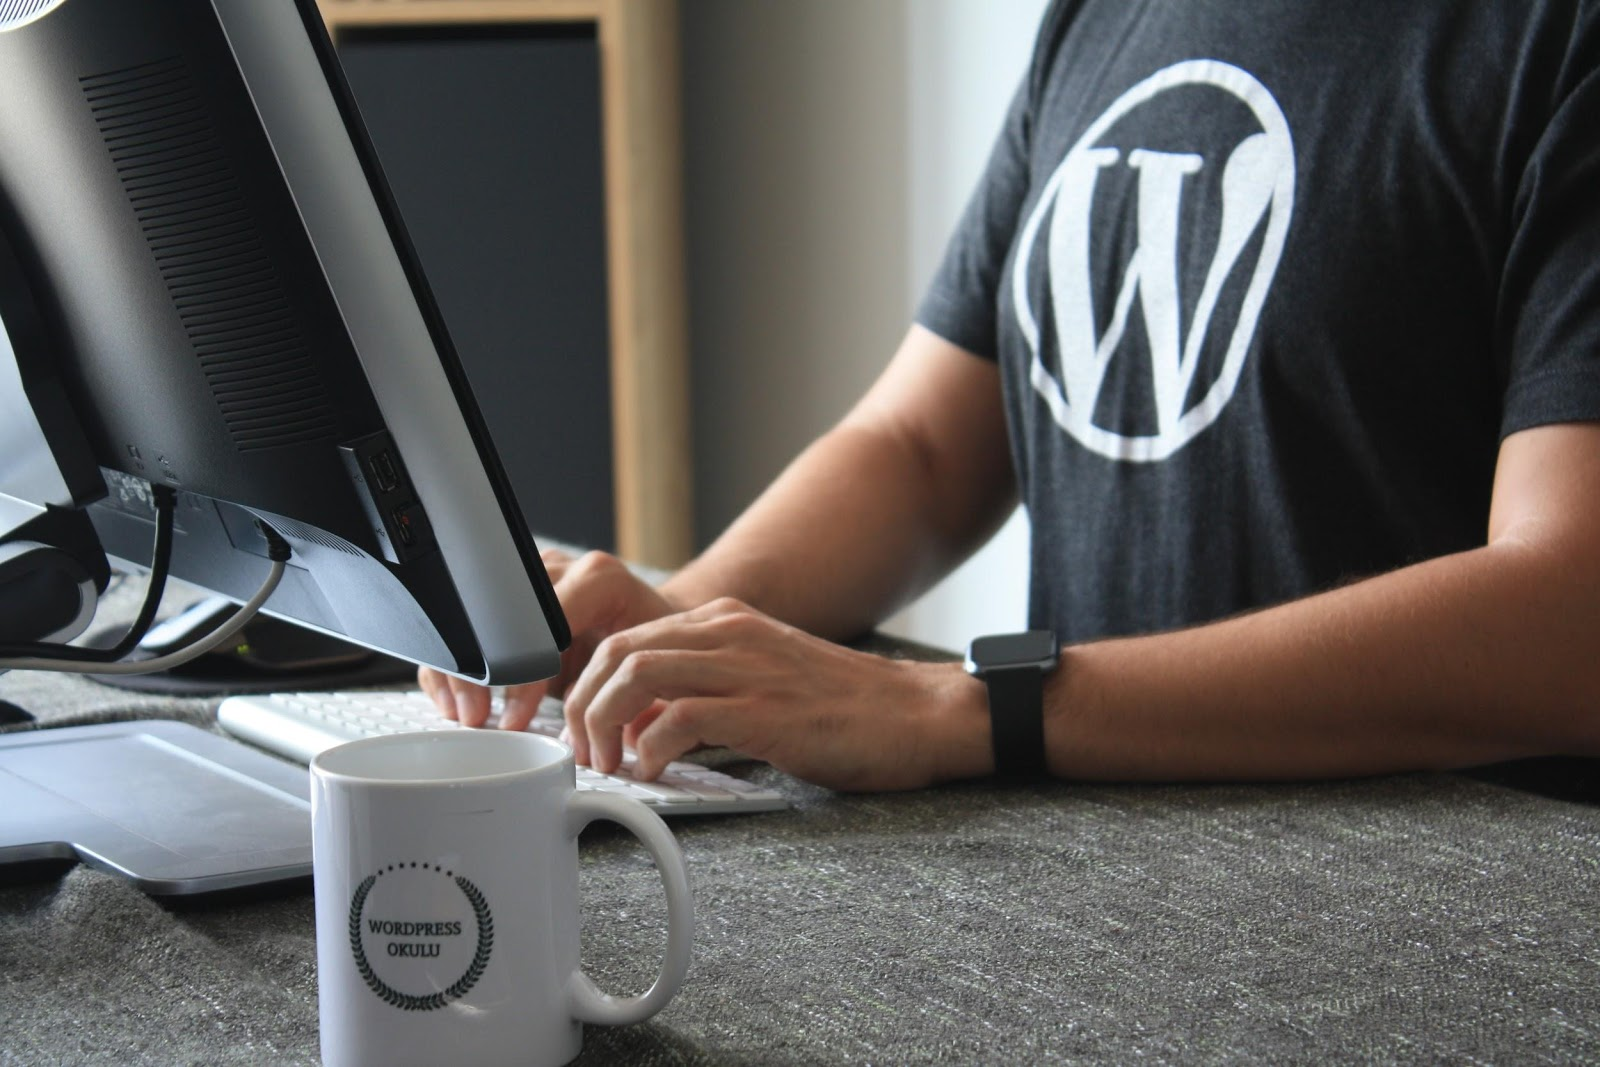 4 Top Reasons to optimize images for your WordPress website